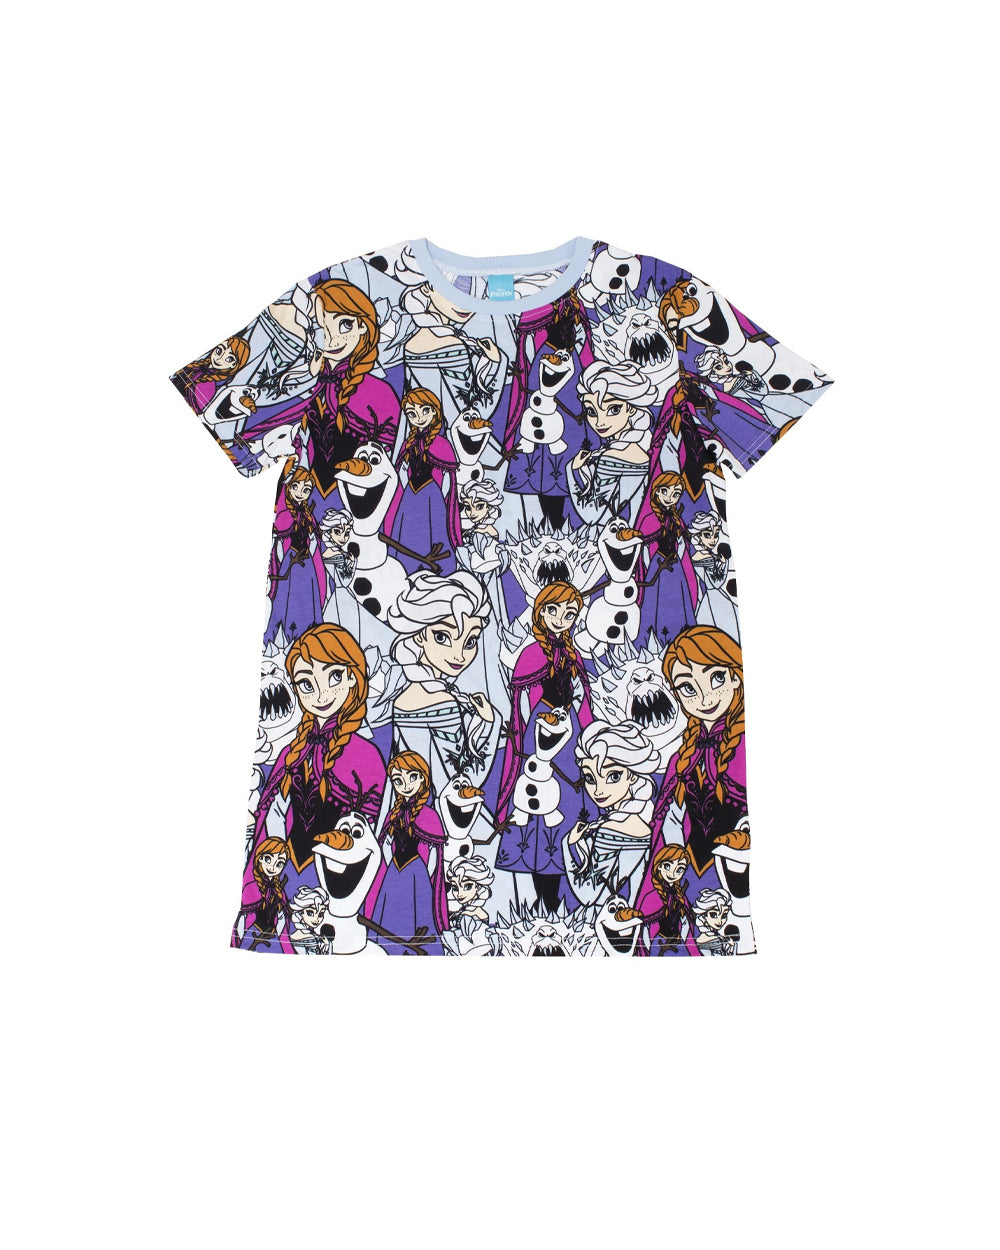 Cakeworthy - Disney Frozen AOP Unisex Tee - The Pink a la Mode - Cakeworthy - The Pink a la Mode